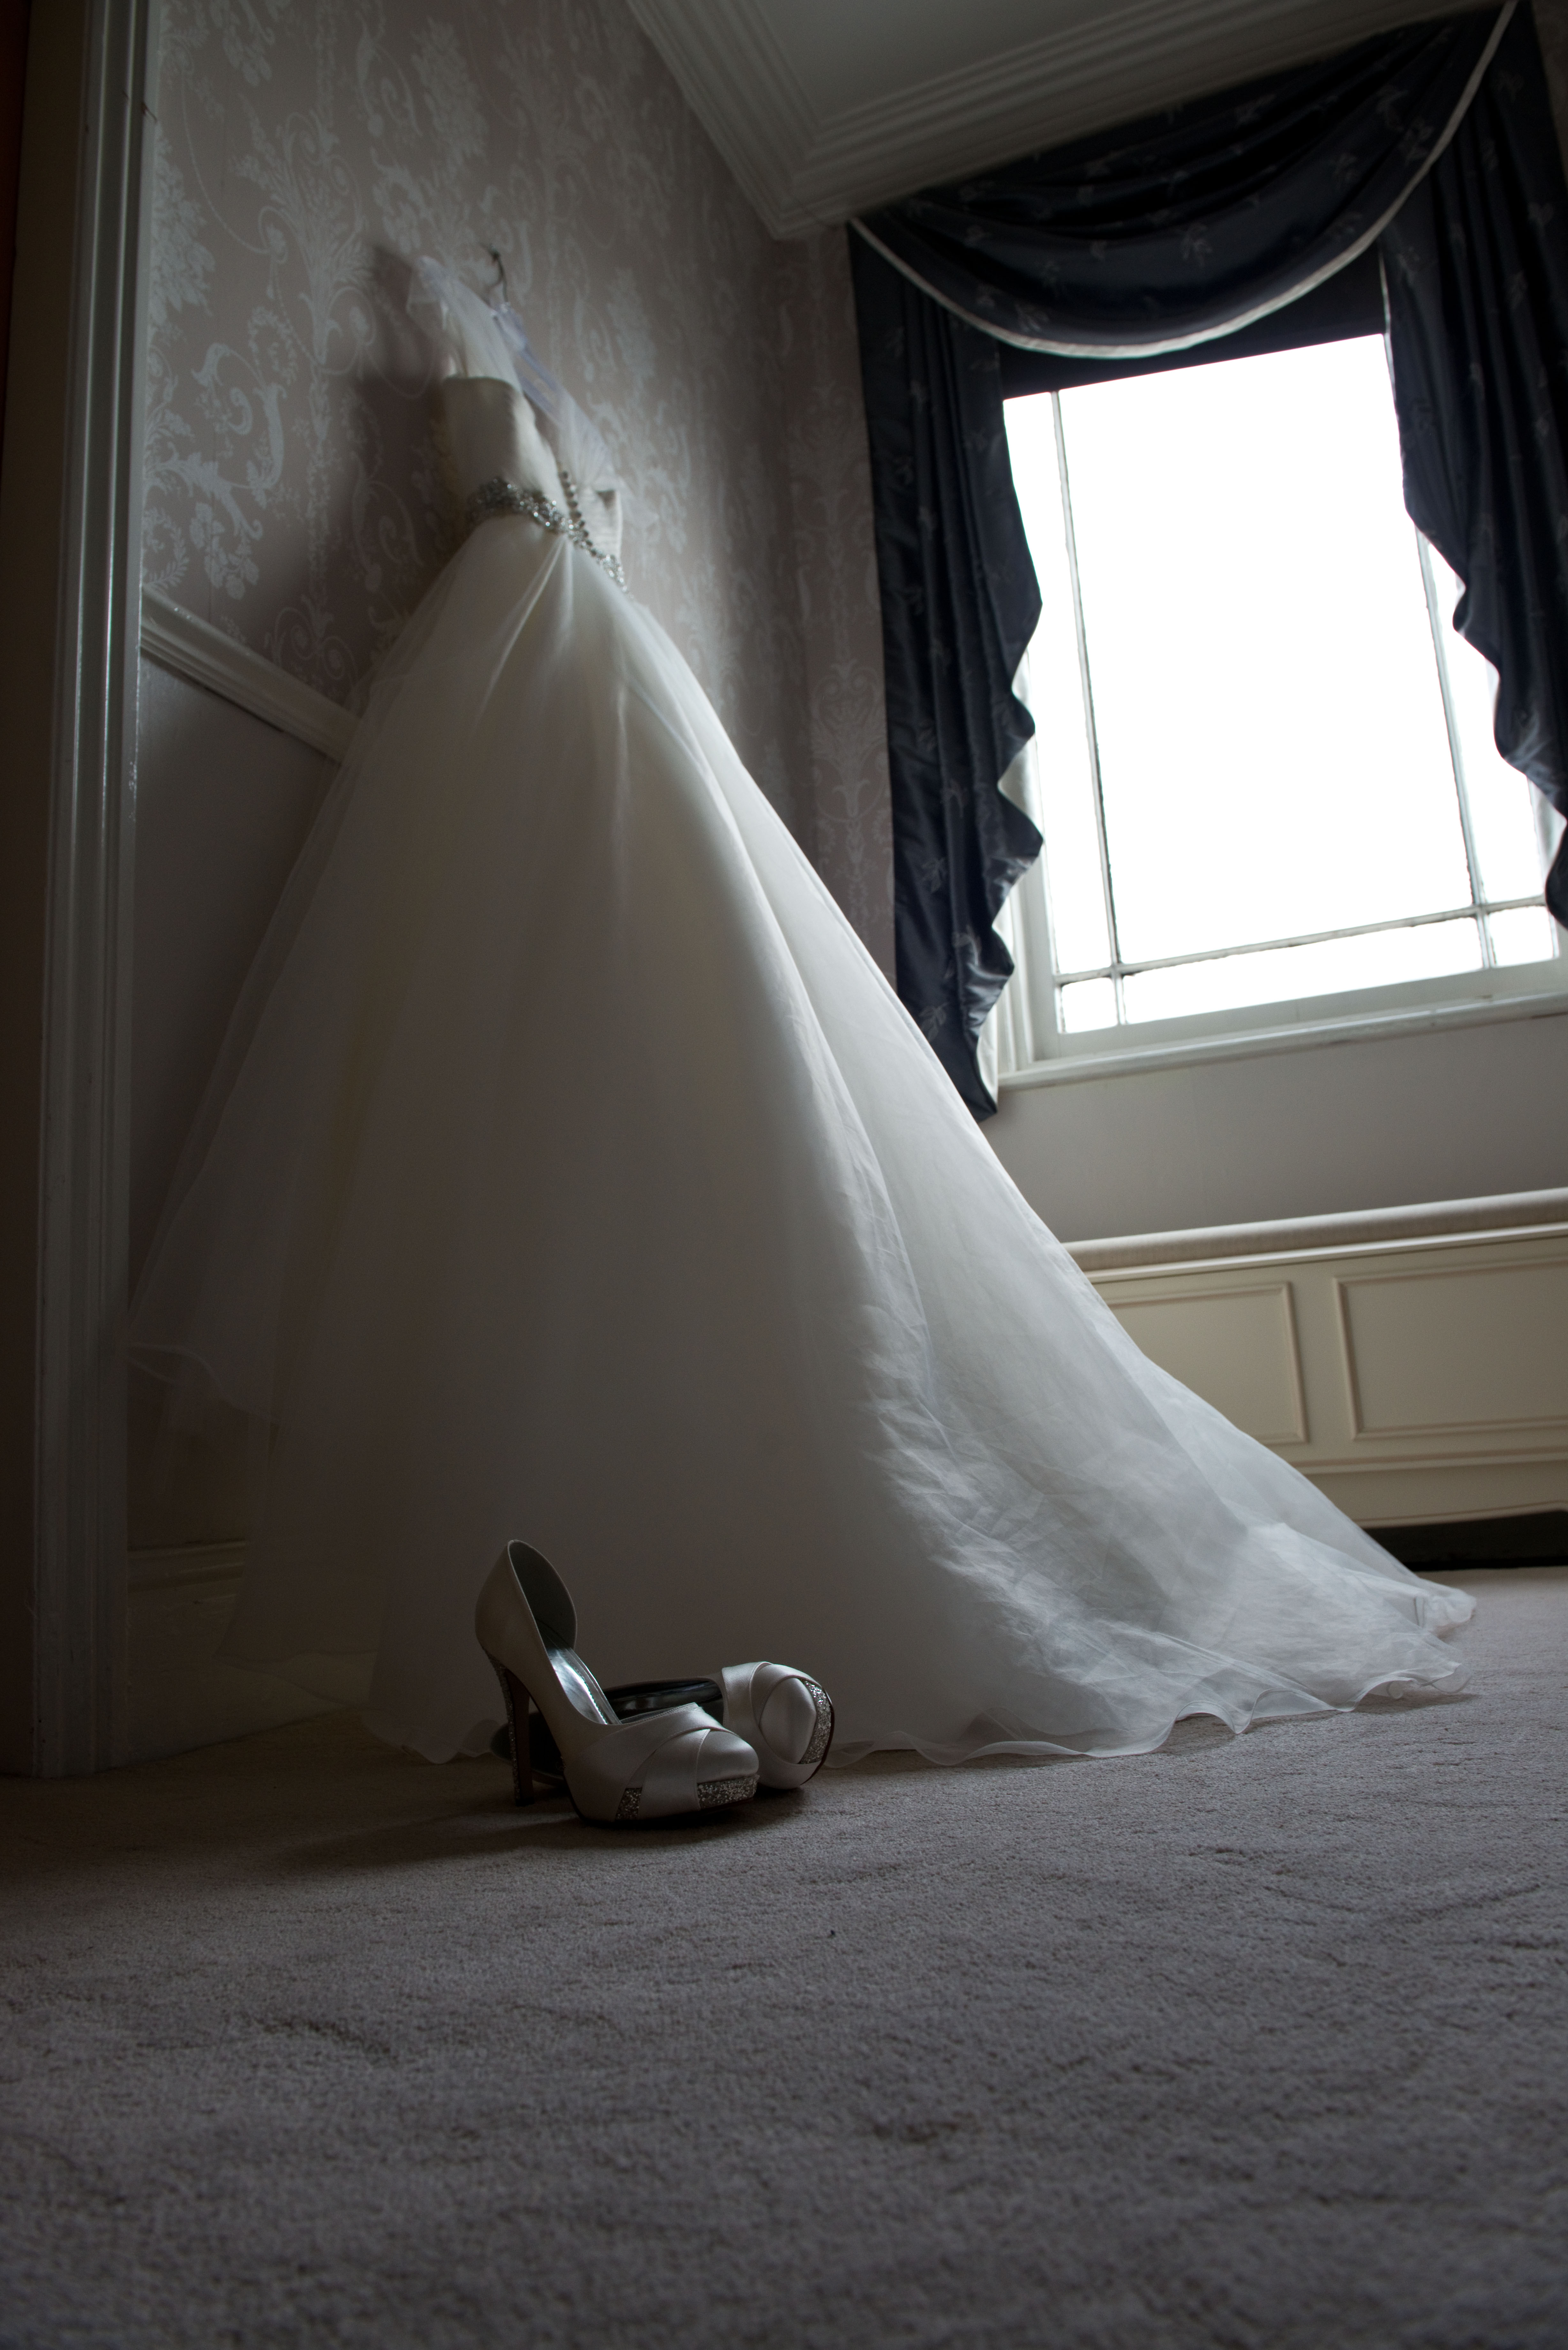 Lower key image of wedding dress with shoes in window light.